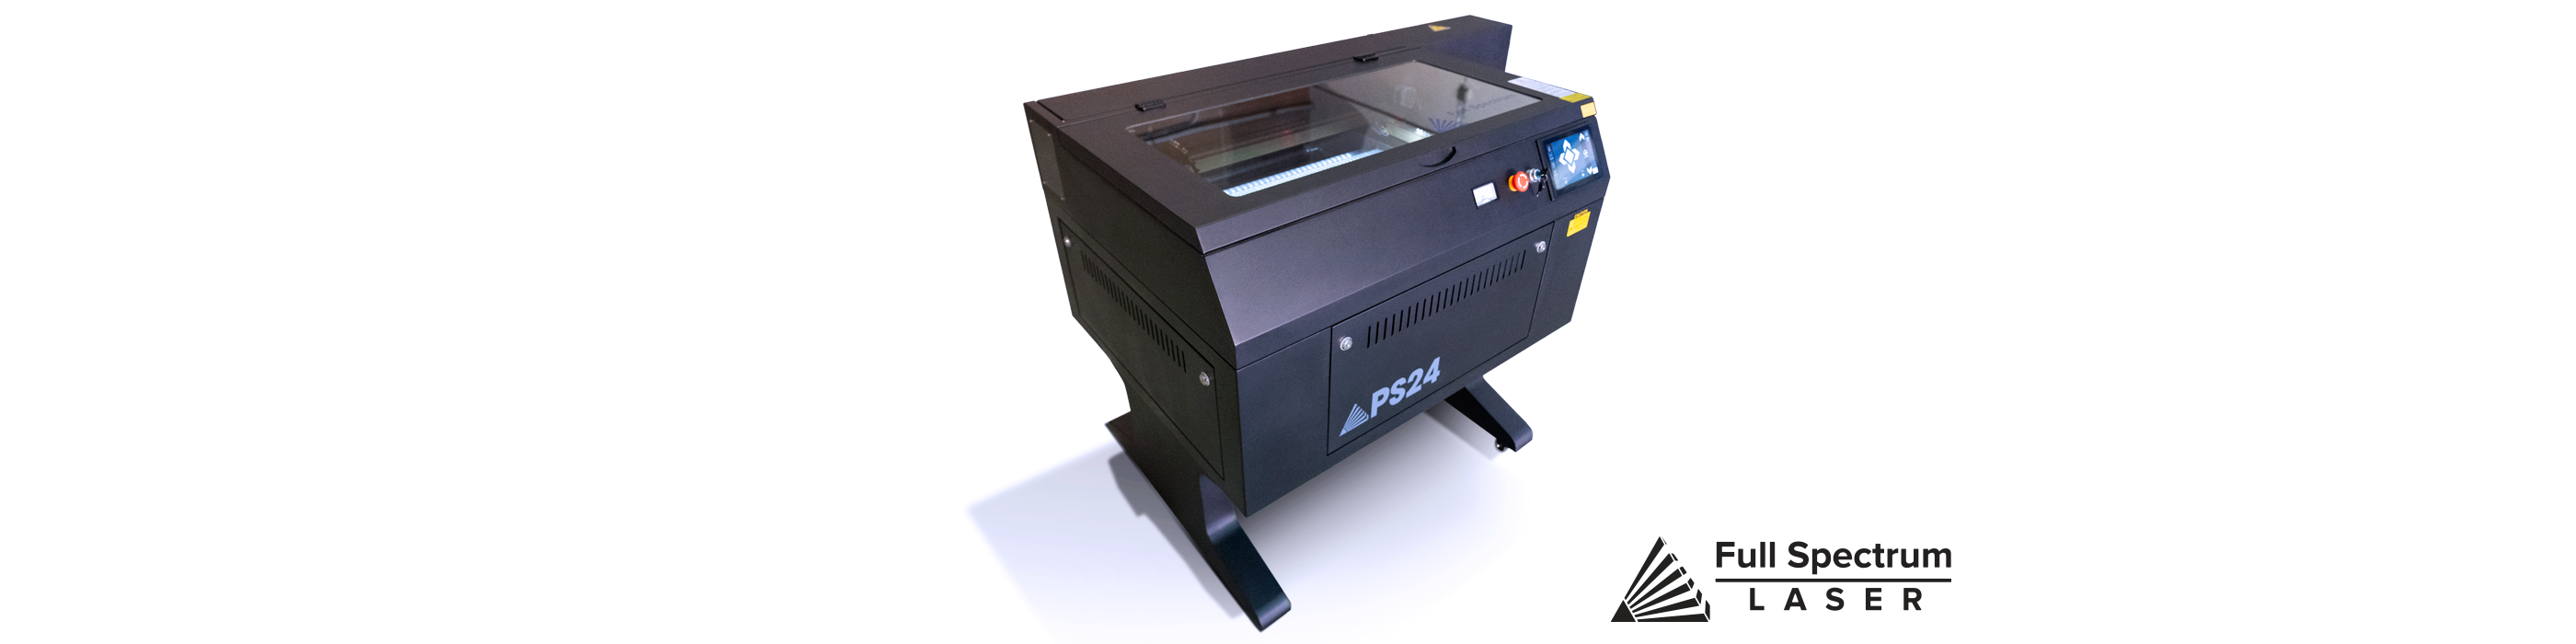 PRO-SERIES PROFESSIONAL 24x16 CO2 LASER